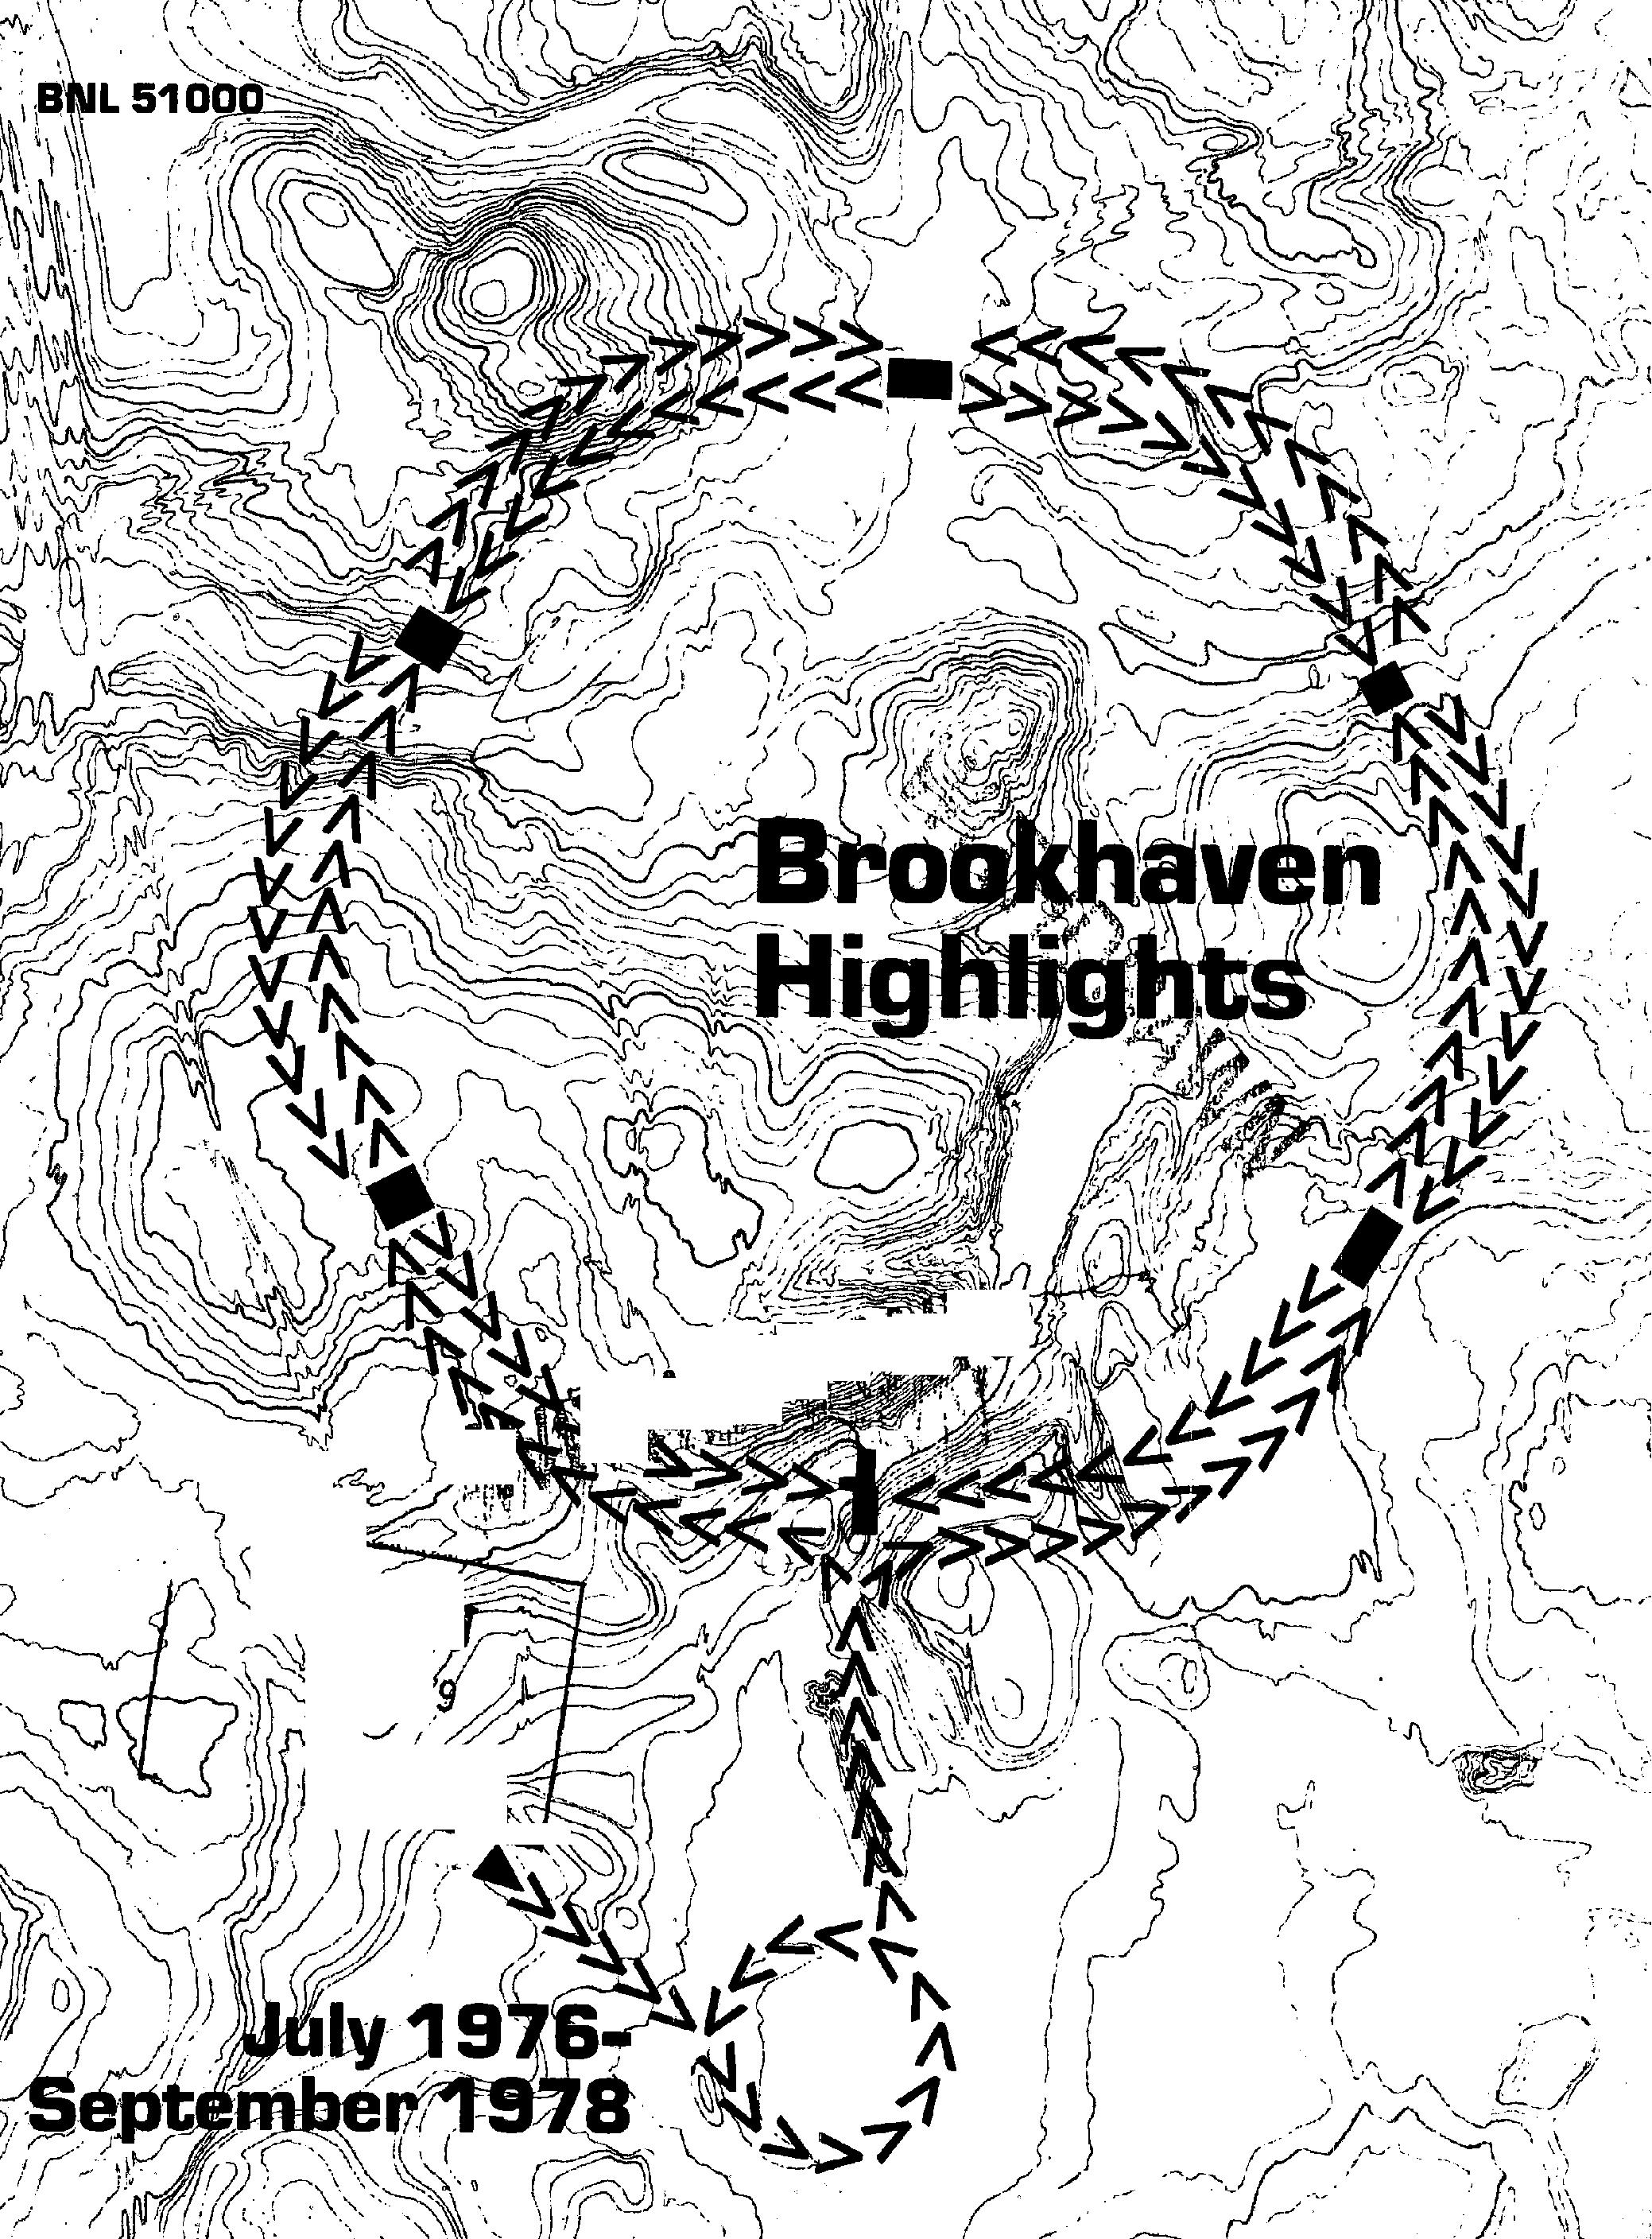 Brookhaven Highlights, July 1976 - September 1978